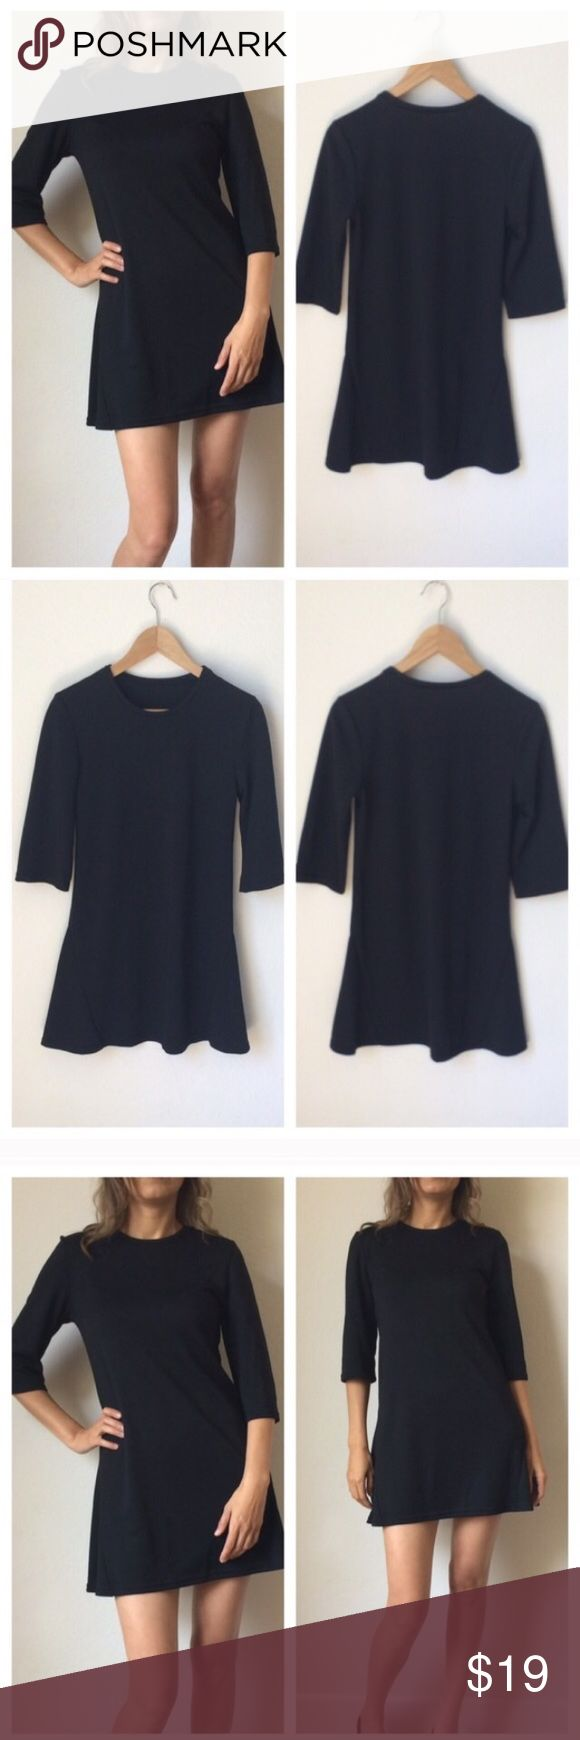 """Black Weekend Dress Tunic New with tags Mini Black Dress 💙. Polyester. Ideal for weekends, super comfortable, tunic style, 3:4"""" sleeve. 💙💙BUNDLE and save 💙💙 Dresses Mini"""